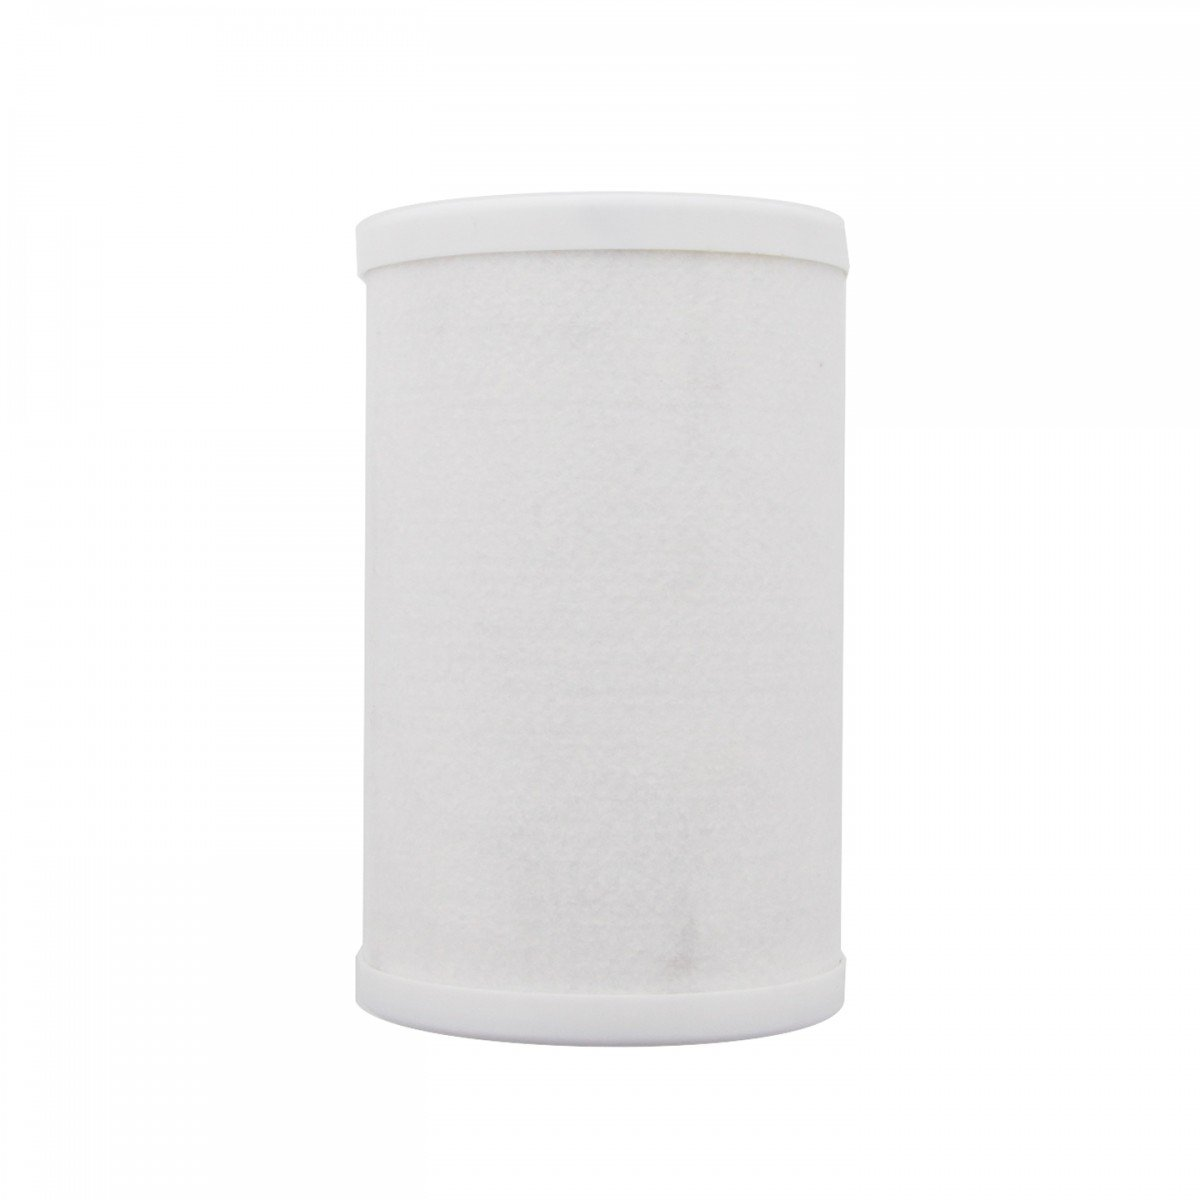 Aries A101 Under Sink Filter Replacement Cartridge